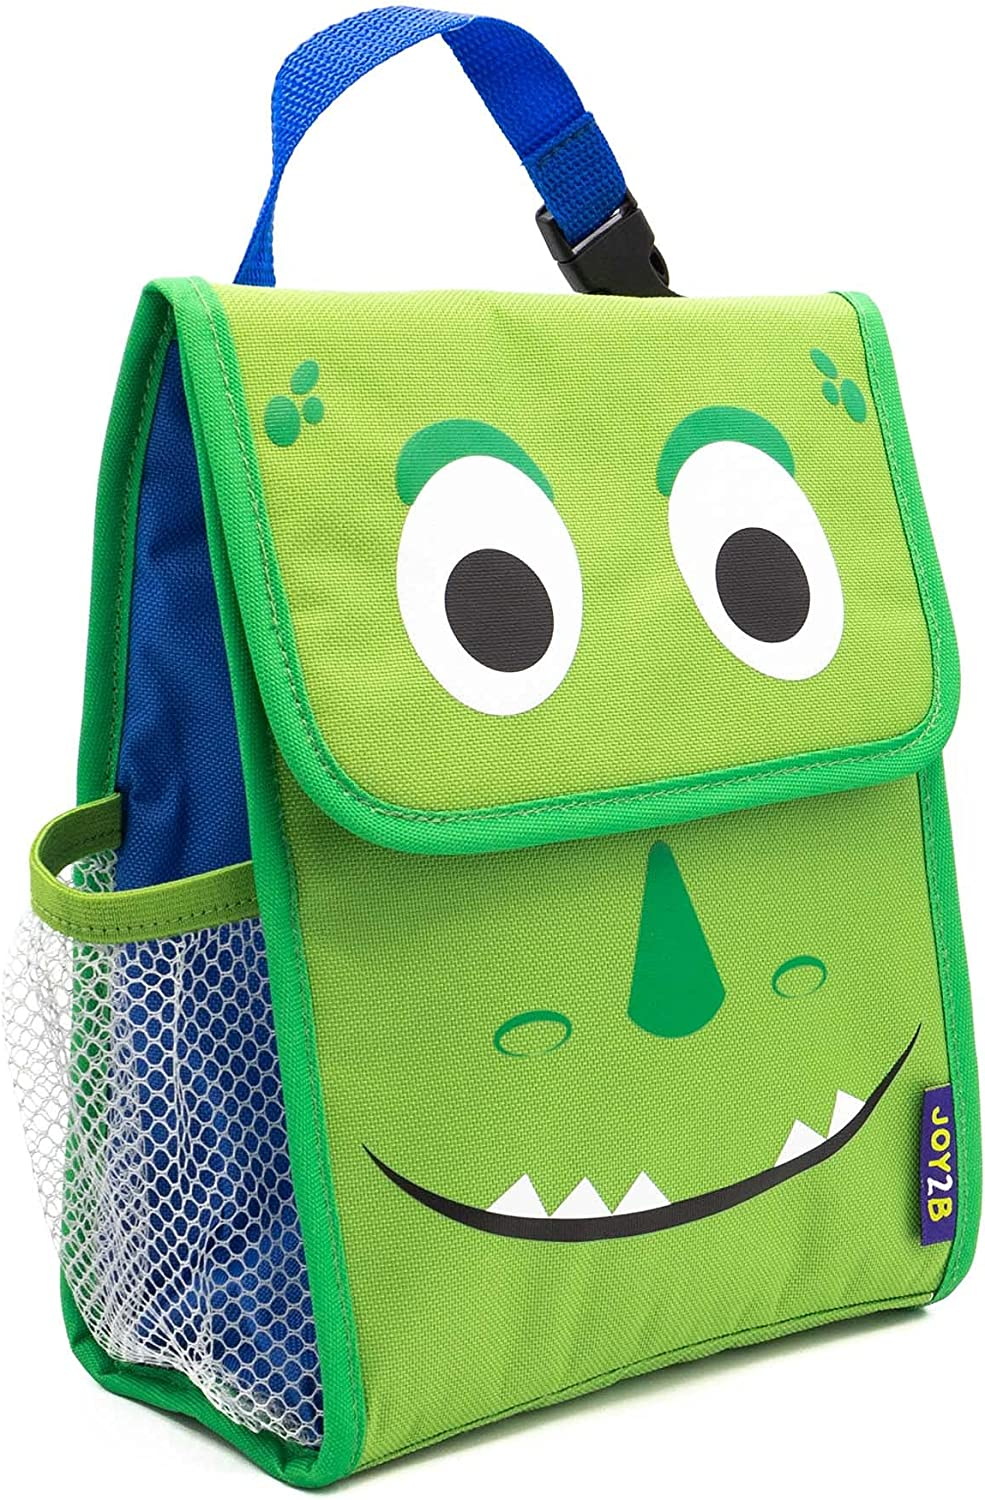 Joy2b Lunch Bag for Boys, Kids Lunch Bag for Hot & Cold Food, Reusable Snack Bags For Kids - Dinosaur Lunch Box Boys Lunch Bag fits Kids Lunch Box & Water-Bottle or Thermos - Daring Dino